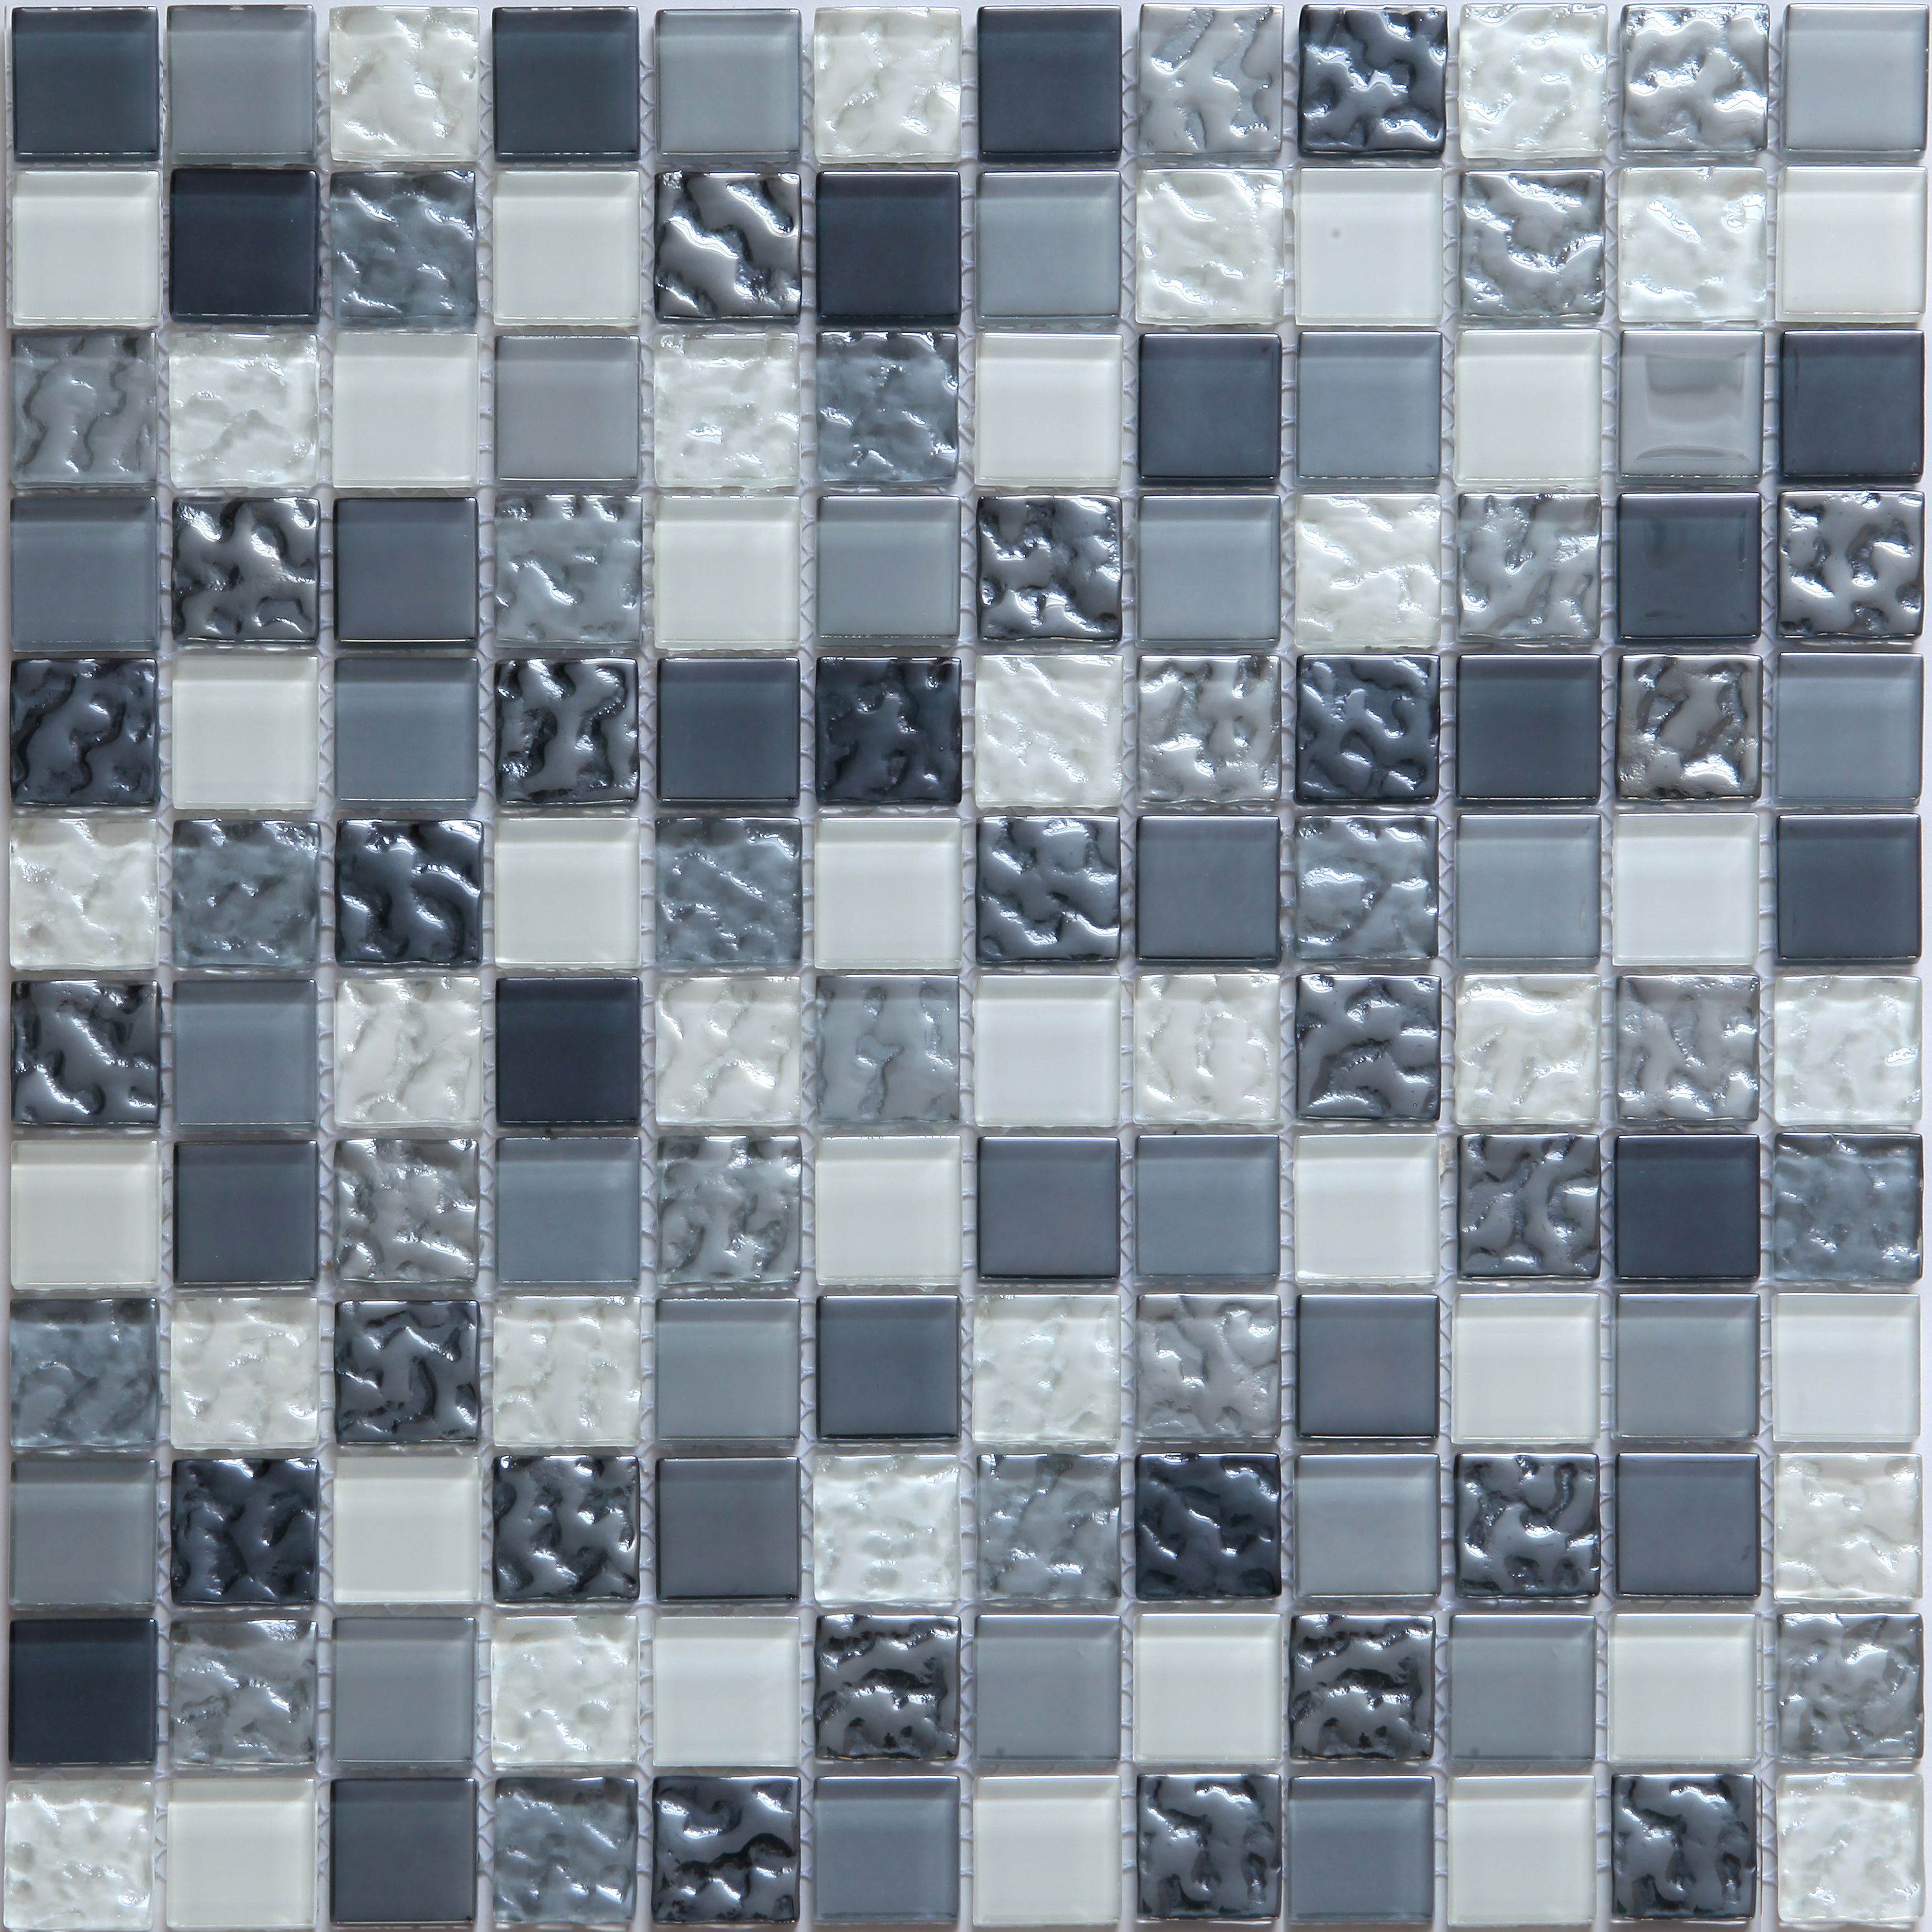 Green Glass Marble Mosaic Tile L 300mm W 300mm: Calabria Grey & White Glass Mosaic Tile, (L)300mm (W)300mm